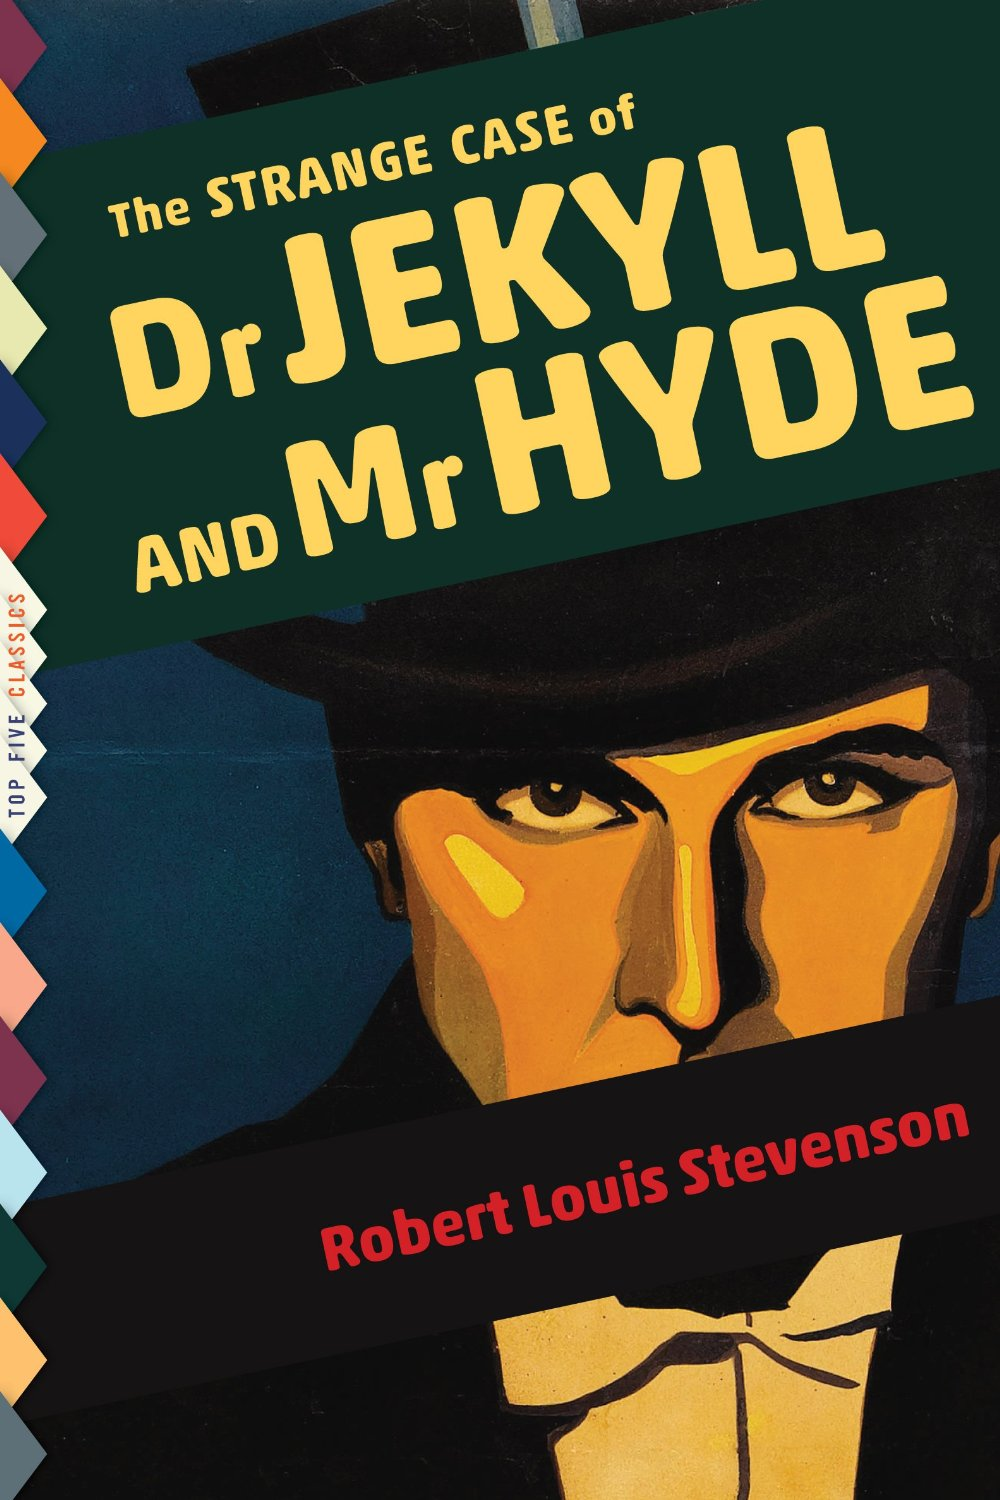 The Strange Case of Dr. Jekyll and Mr. Hyde – books about books